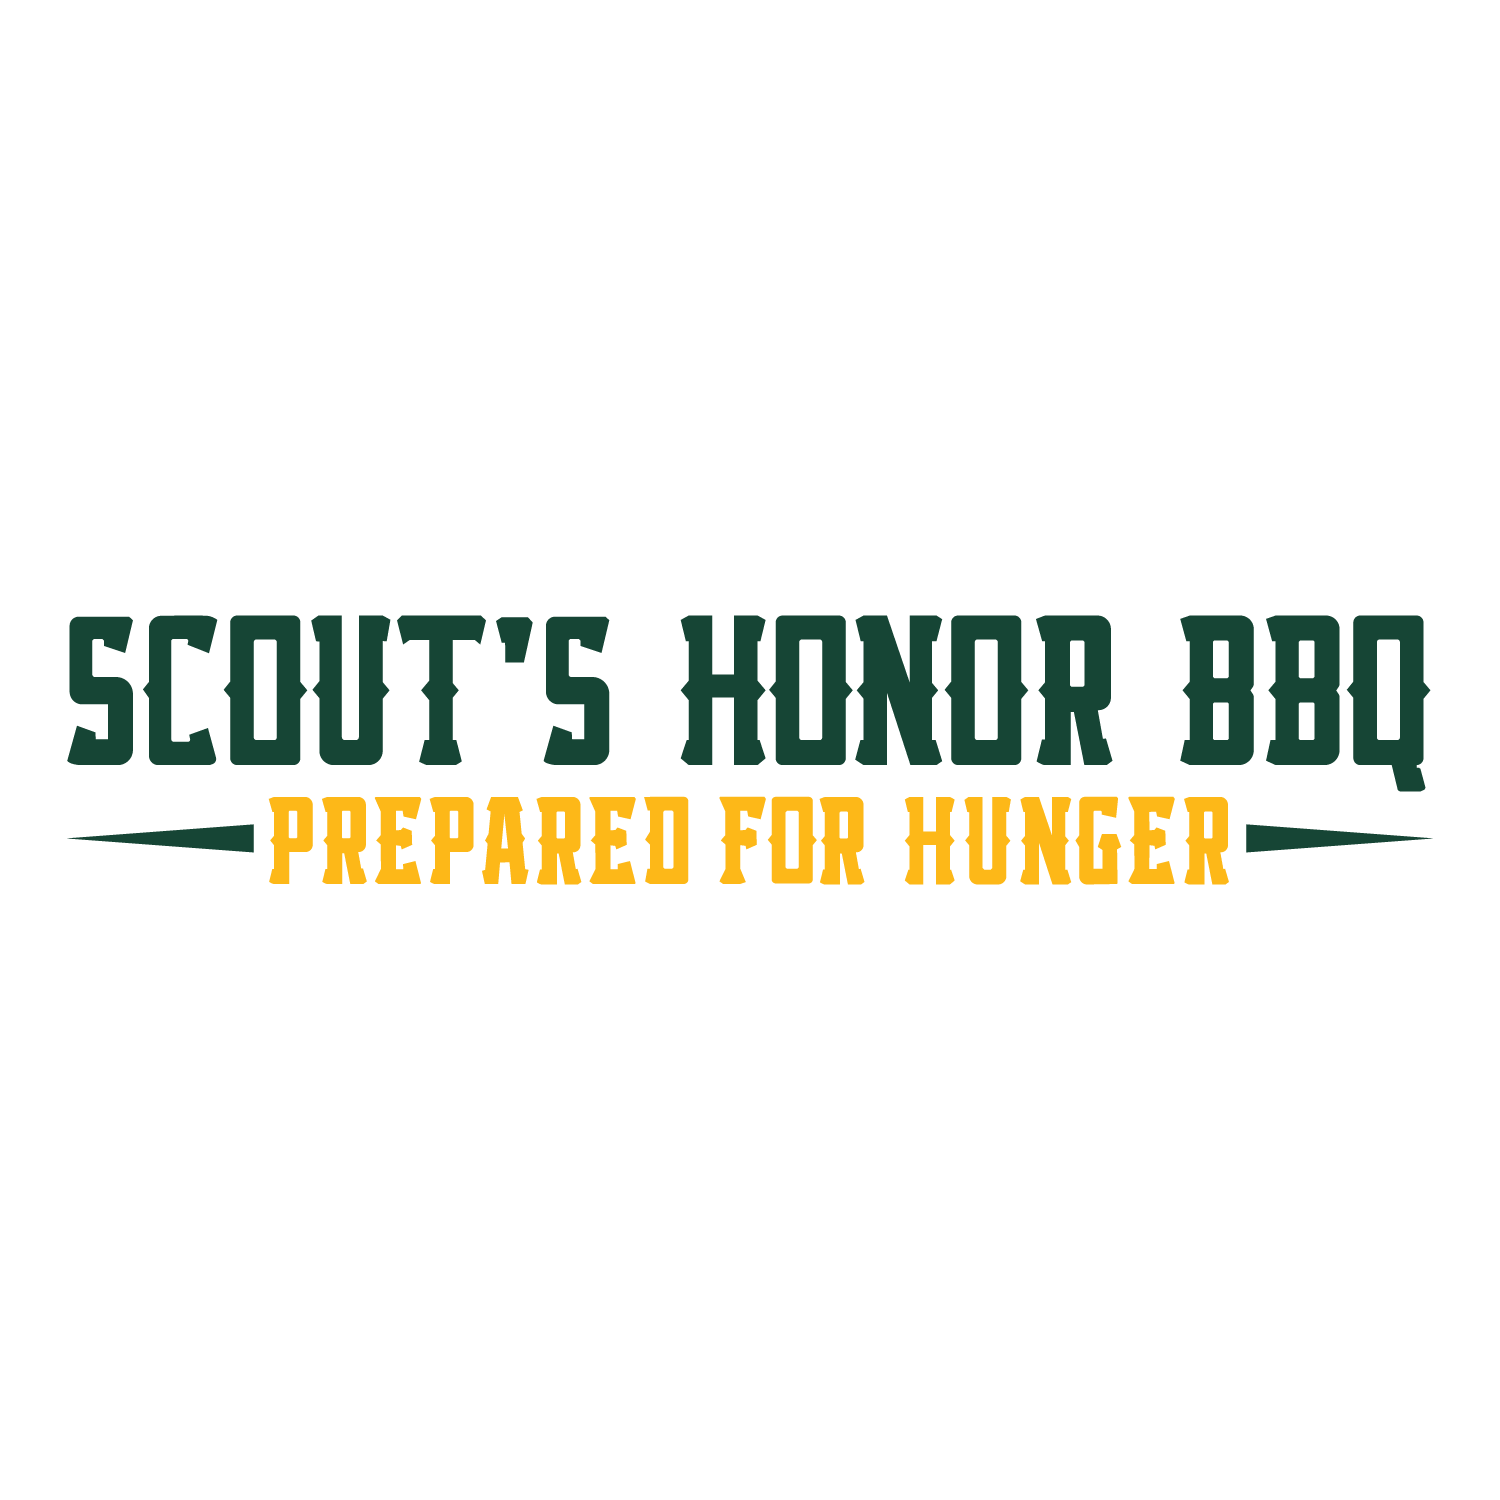 Scout's Honor BBQ Logo